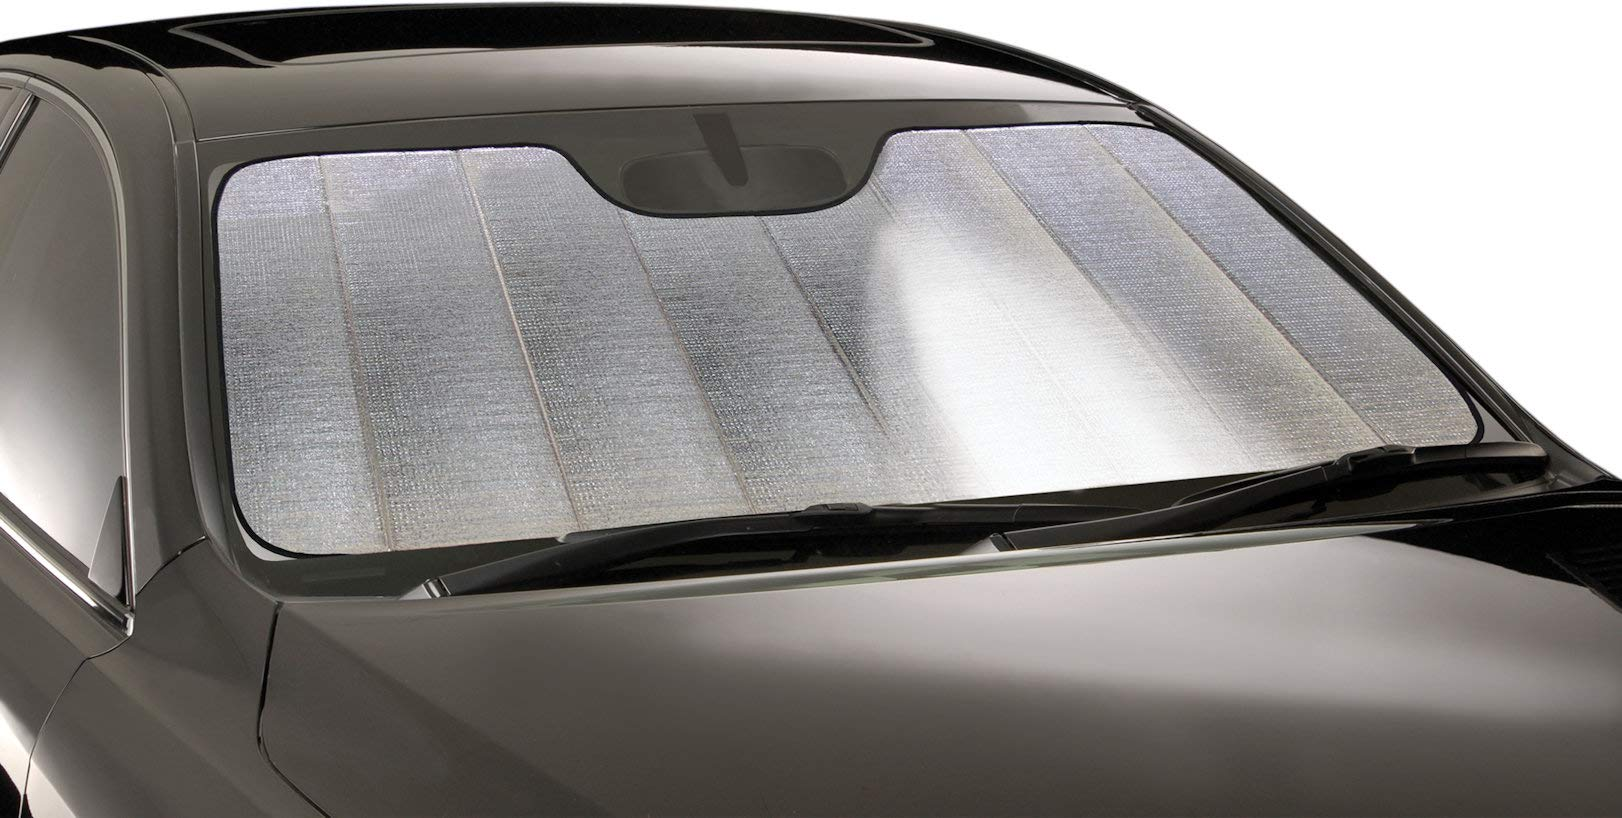 Intro-Tech SU-40A-R Silver Ultimate Reflector Custom Fit Folding Windshield Sunshade for Select Subaru Outback Models, w/Sensor by Intro-Tech Automotive (Image #1)